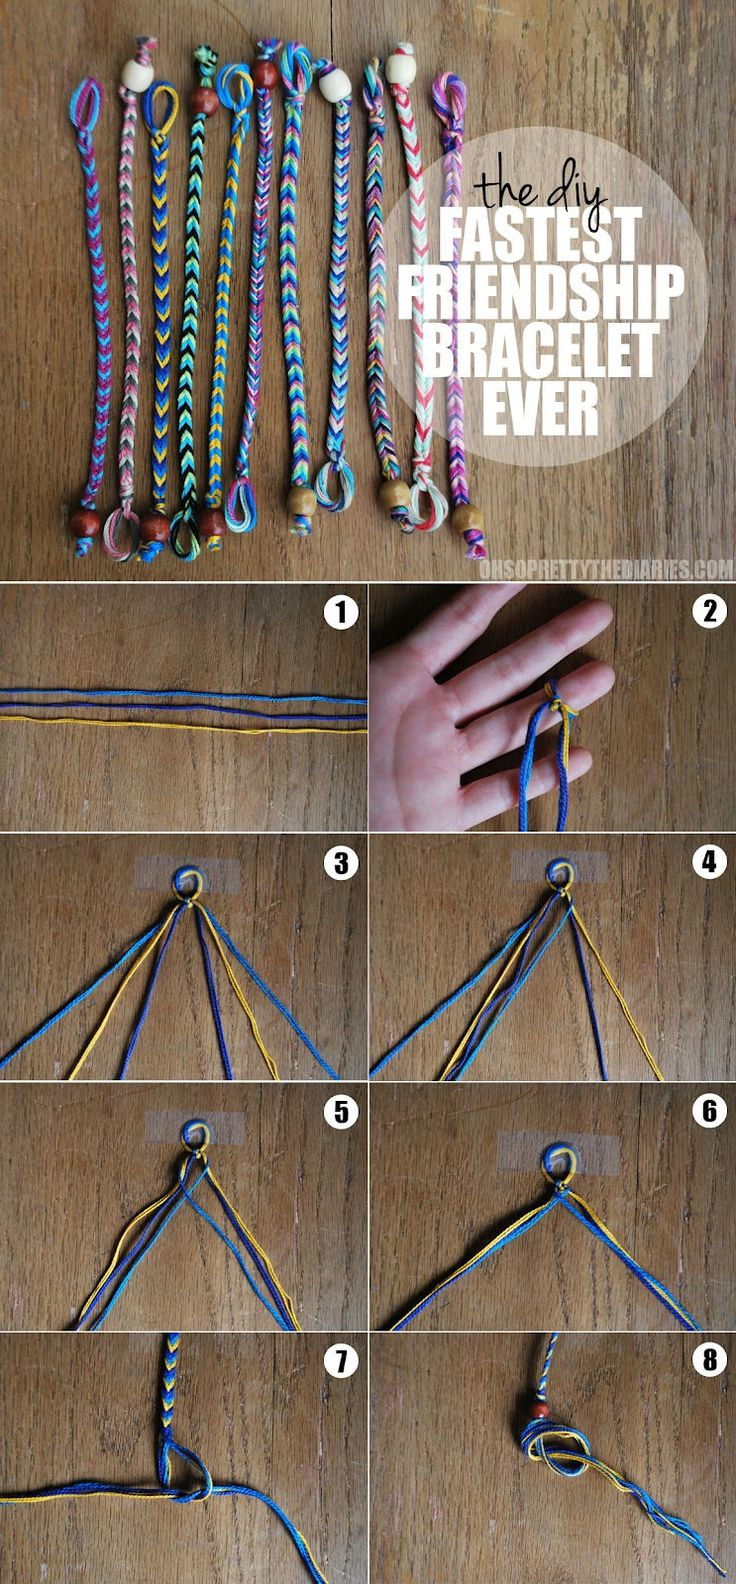 So many different ways.: Diy Friendship Bracelet, Easy Friendship Bracelet, Fastest Friendship, Diy Bracelets, Friendship Bracelets, Friendship Craft